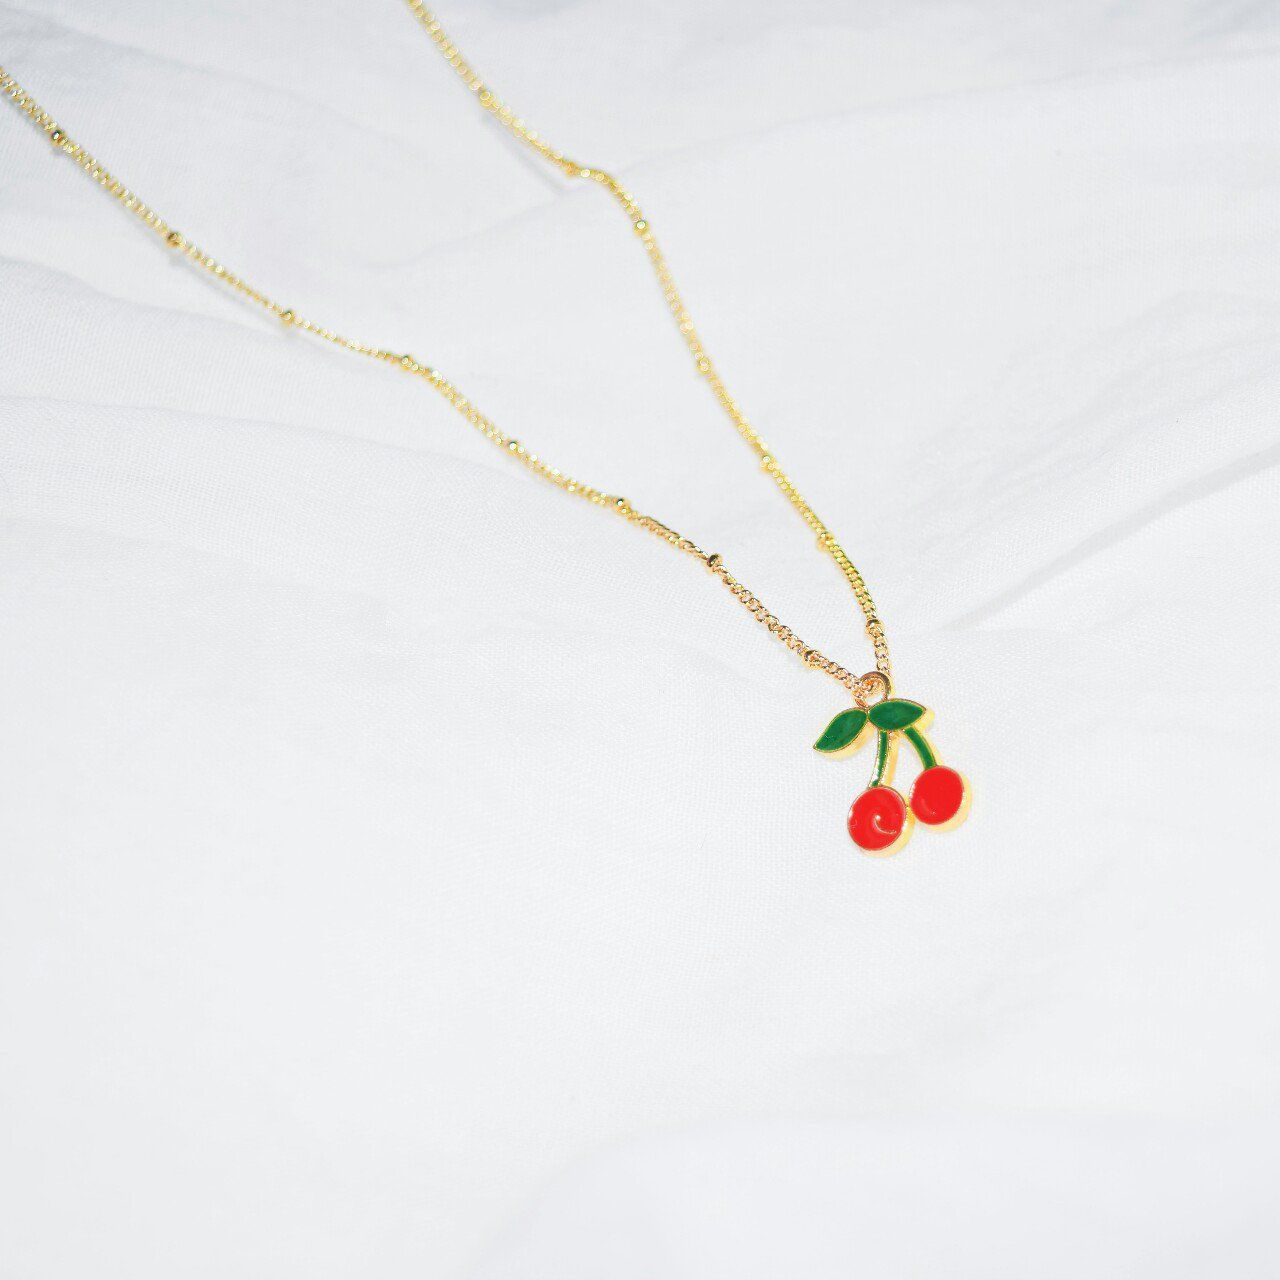 shop this trendy cherry gold necklace in our Depop shop!